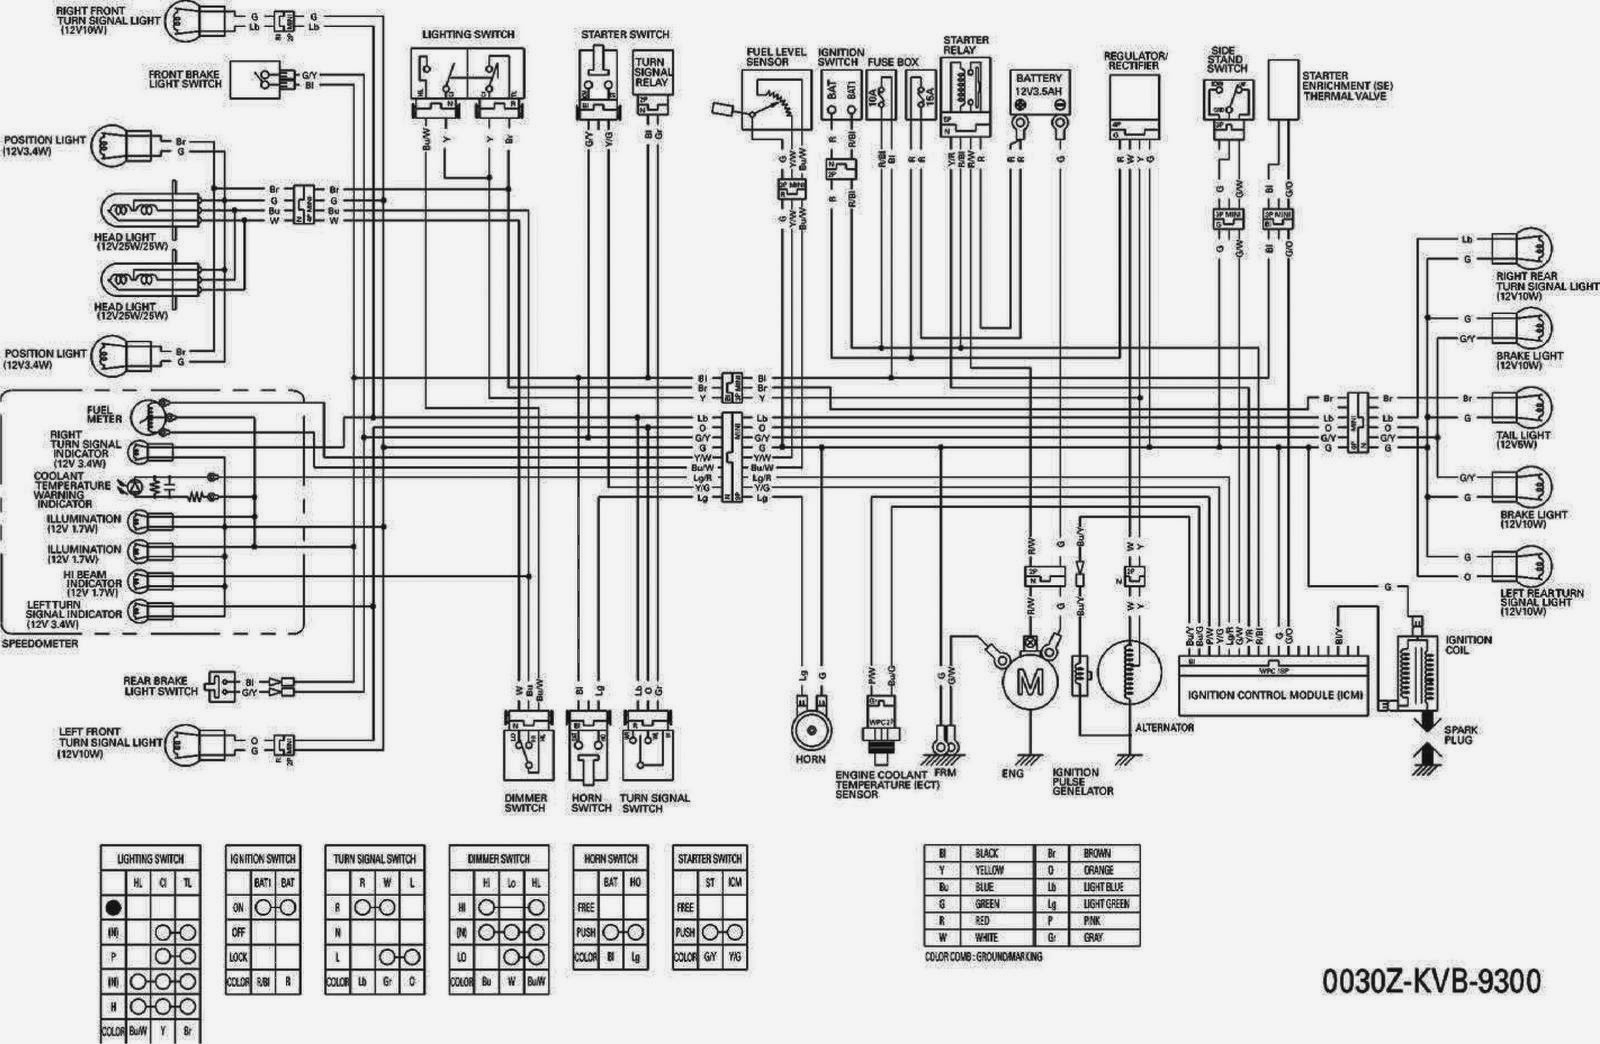 xl250 wiring diagram [ 1600 x 1044 Pixel ]